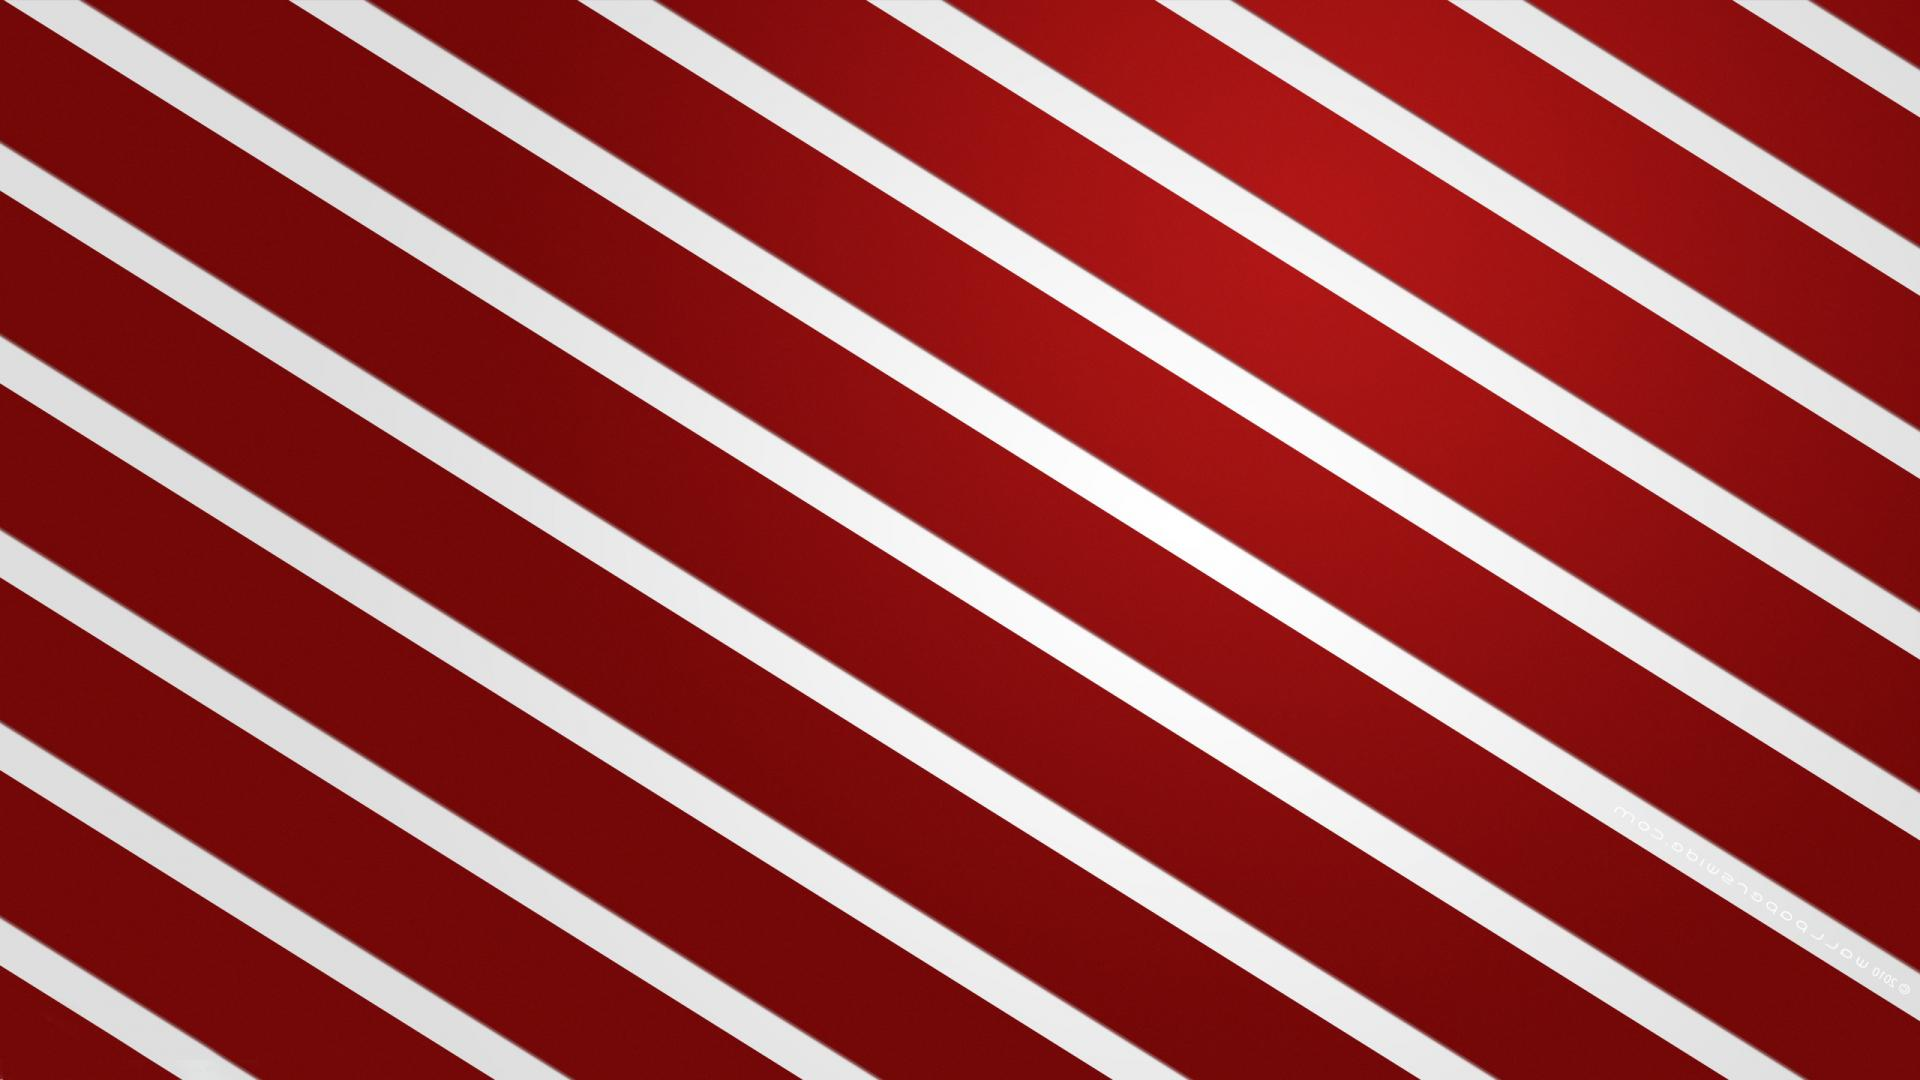 Download Red And White Stripes Wallpaper Gallery